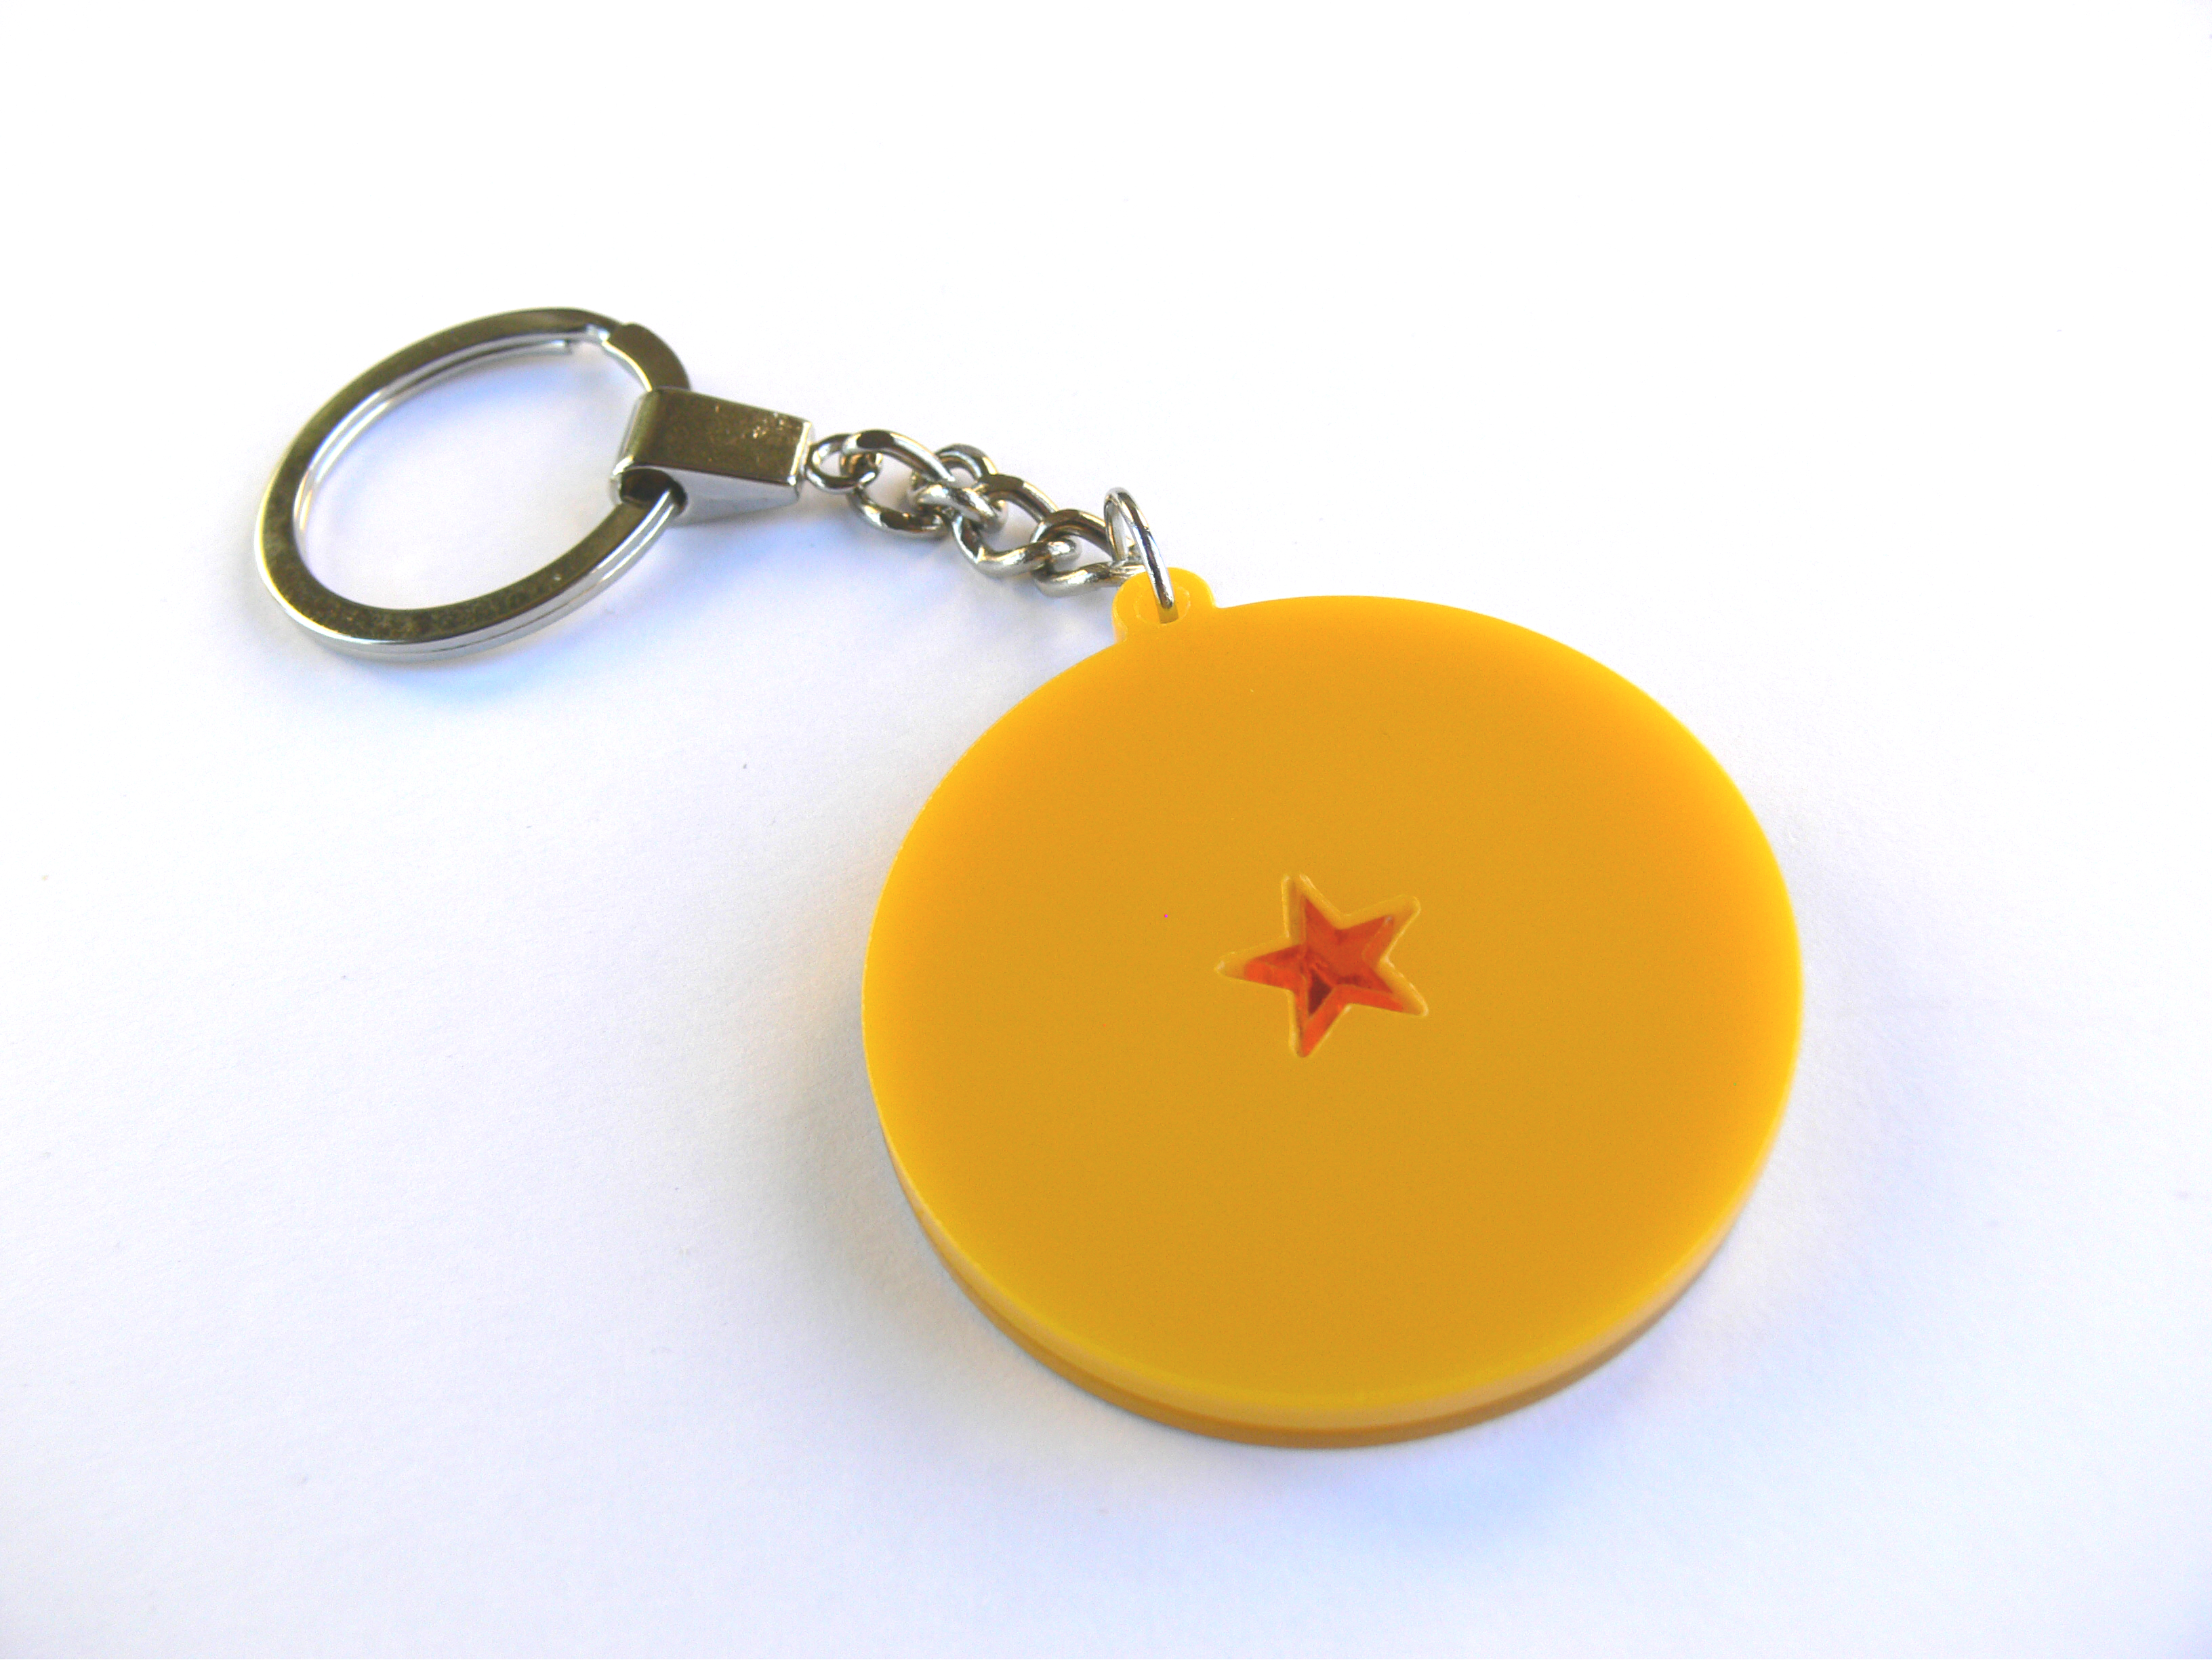 Dragon Ball Z One Star Ball Keychain Laser Cut From Yellow